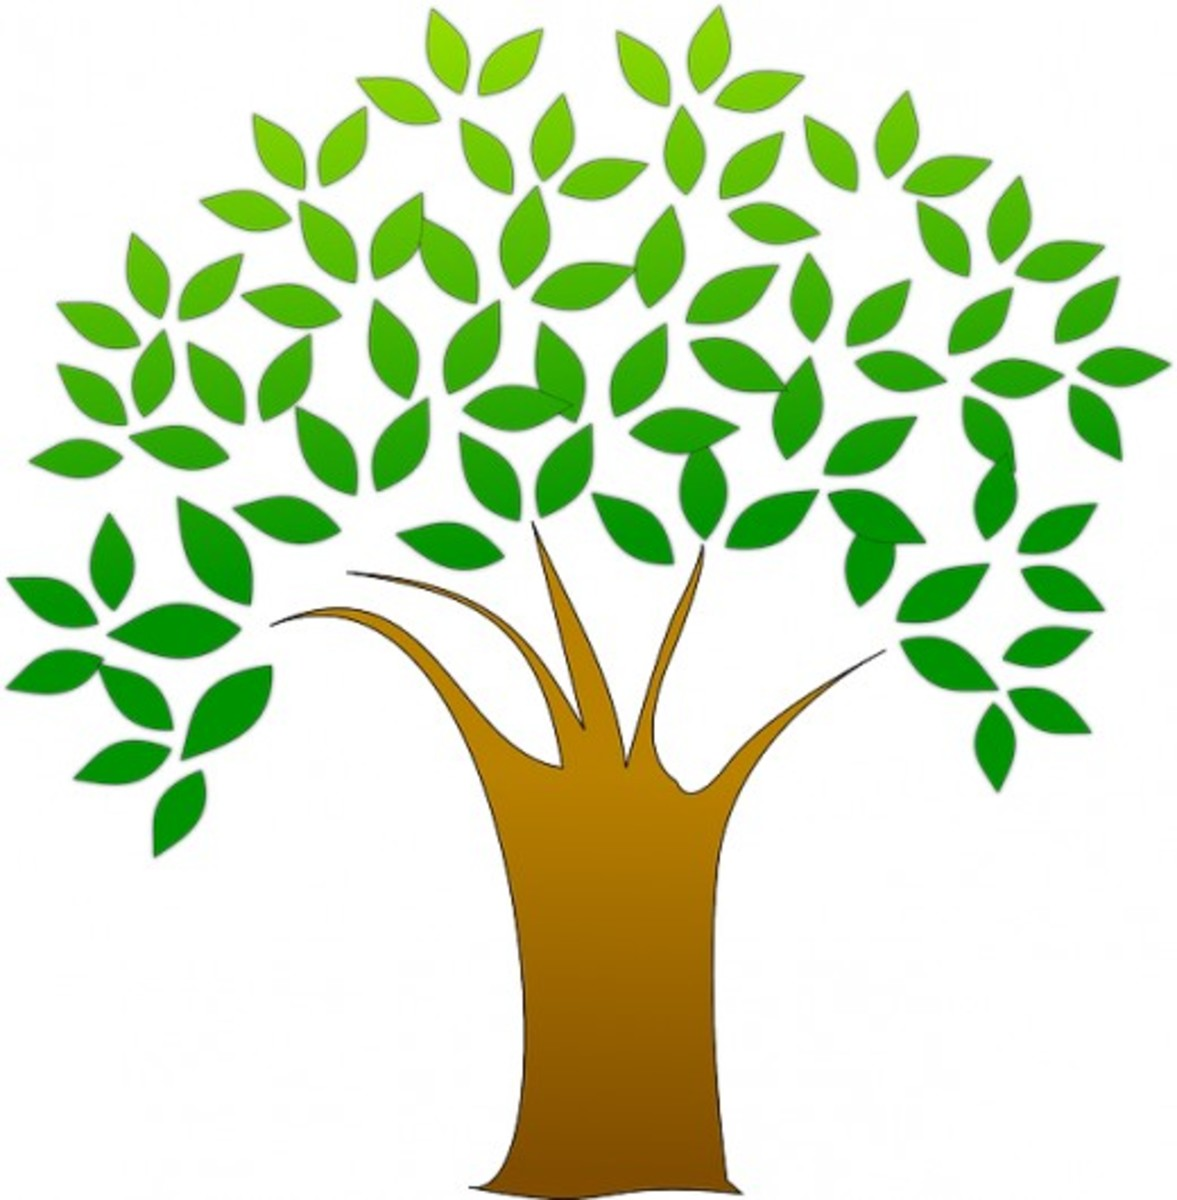 Tree Clip Art of Tree with Leaves